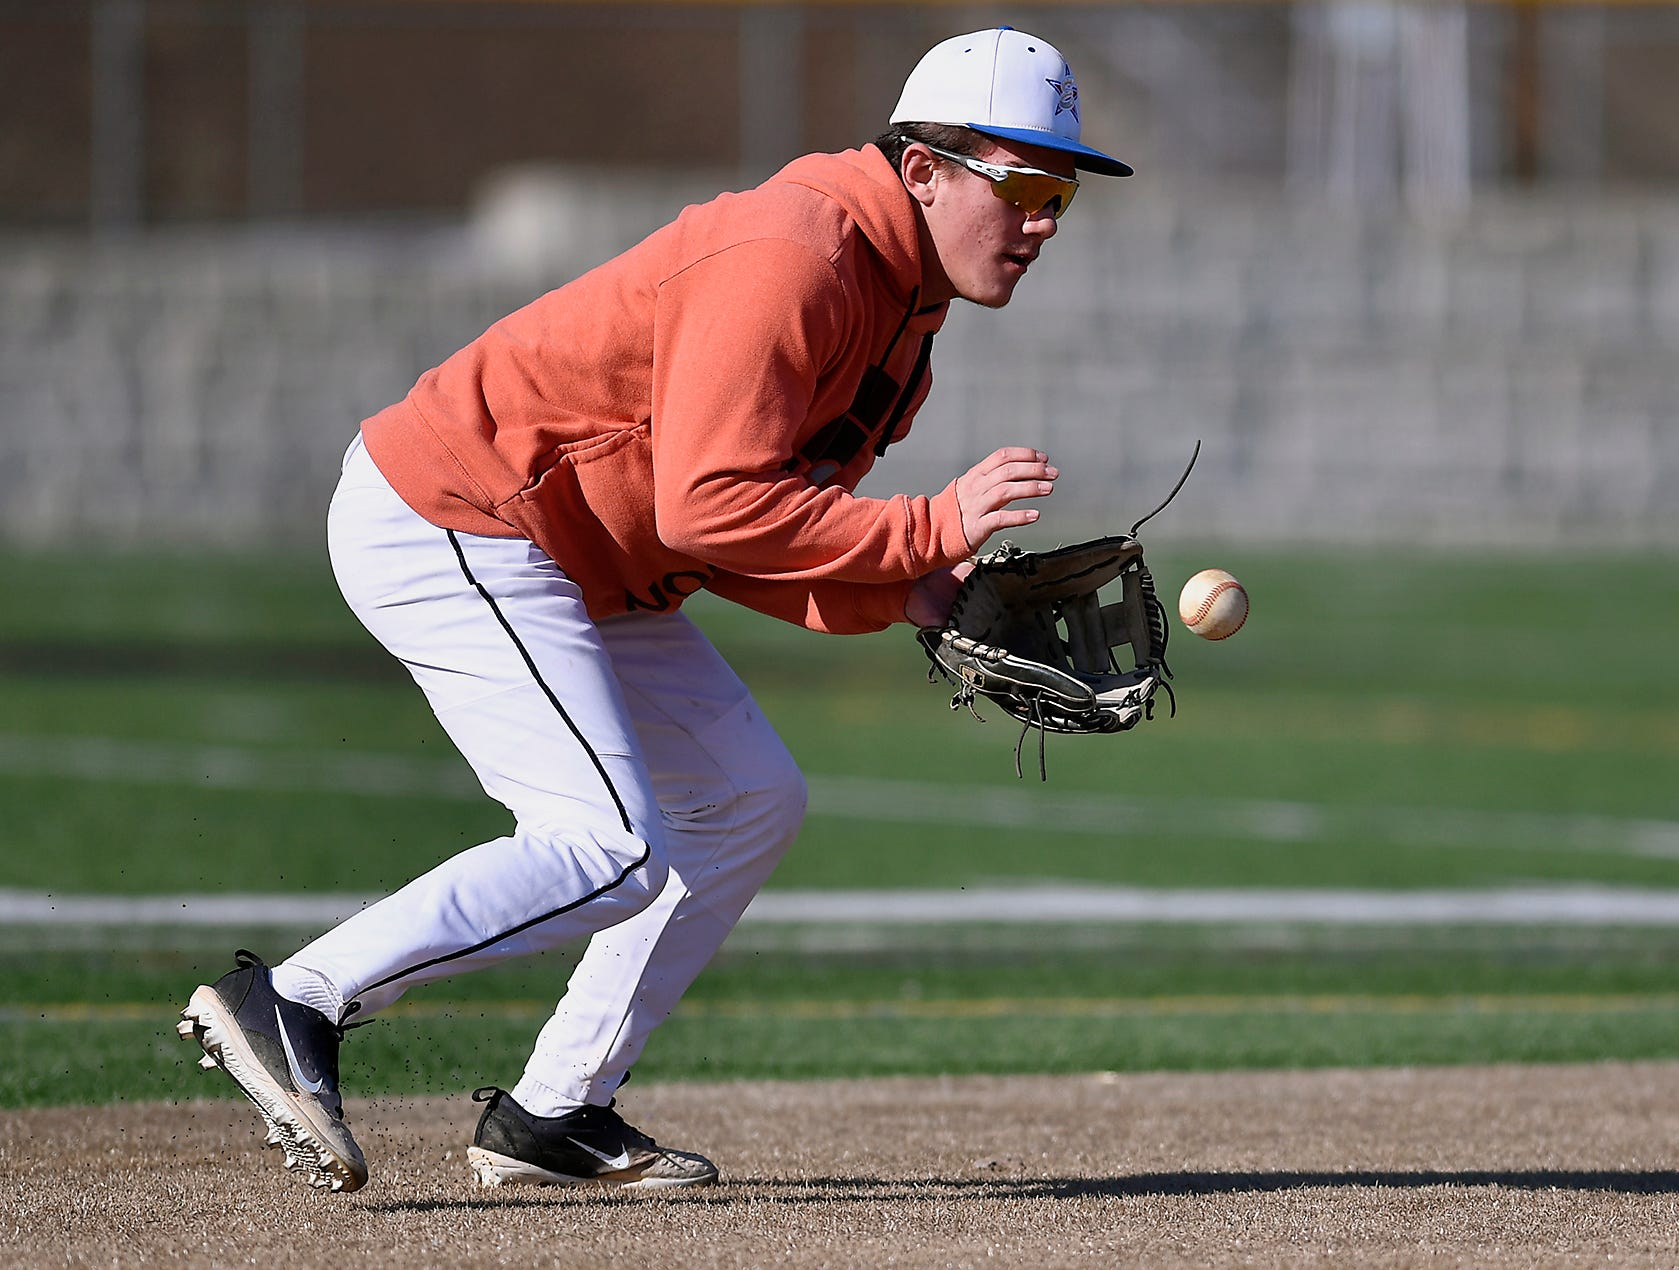 Red Lion High School shortstop Cole Daugherty scoops up a grounder during practice, Monday, March 11, 2019John A. Pavoncello photo